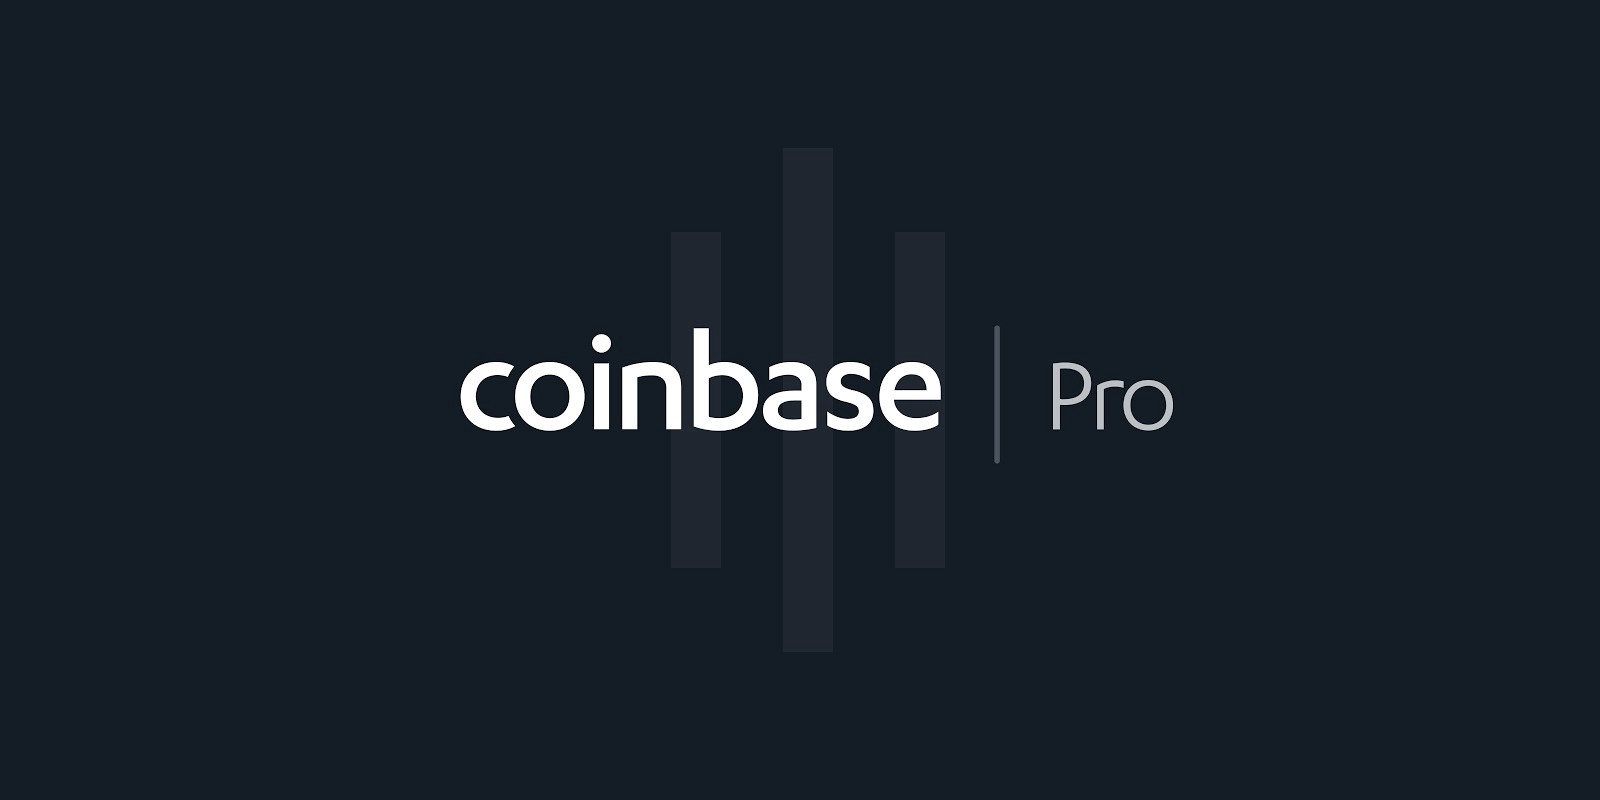 coinbase.com - Coinbase - Coinbase Pro Market Structure Update